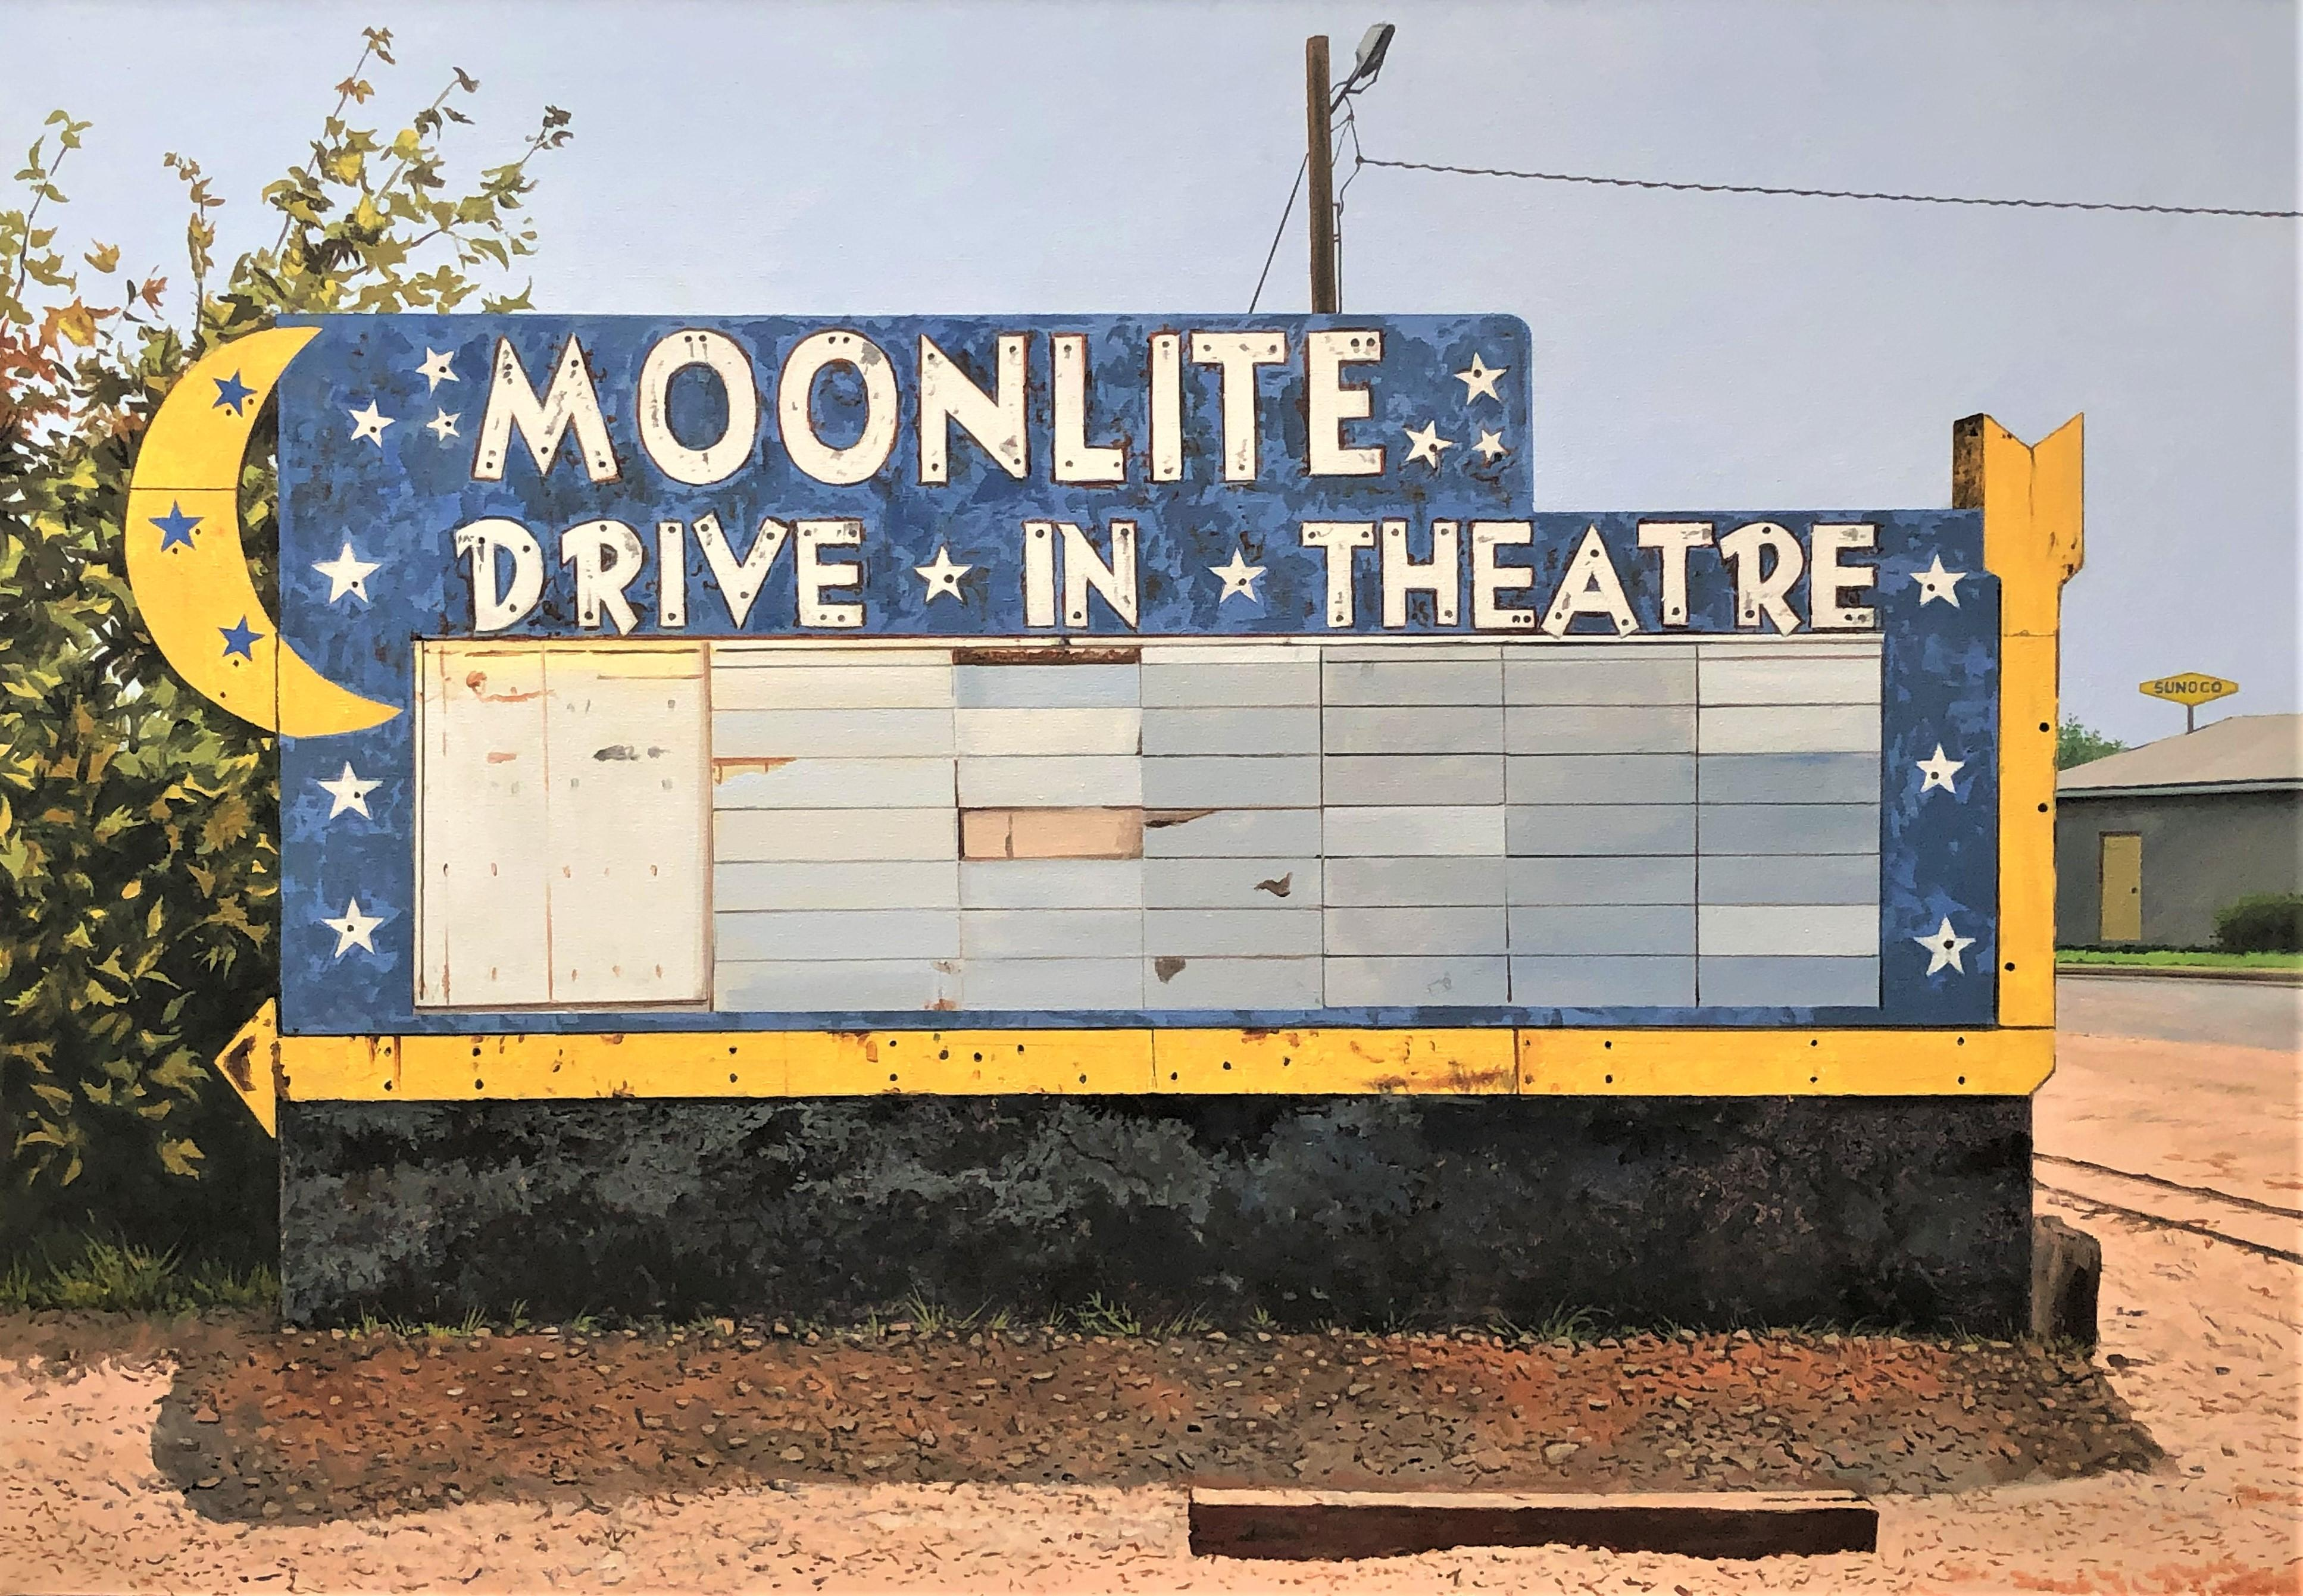 Contemporary American Nostalgic Sign of MoonLite Drive-In Theatre in West Texas